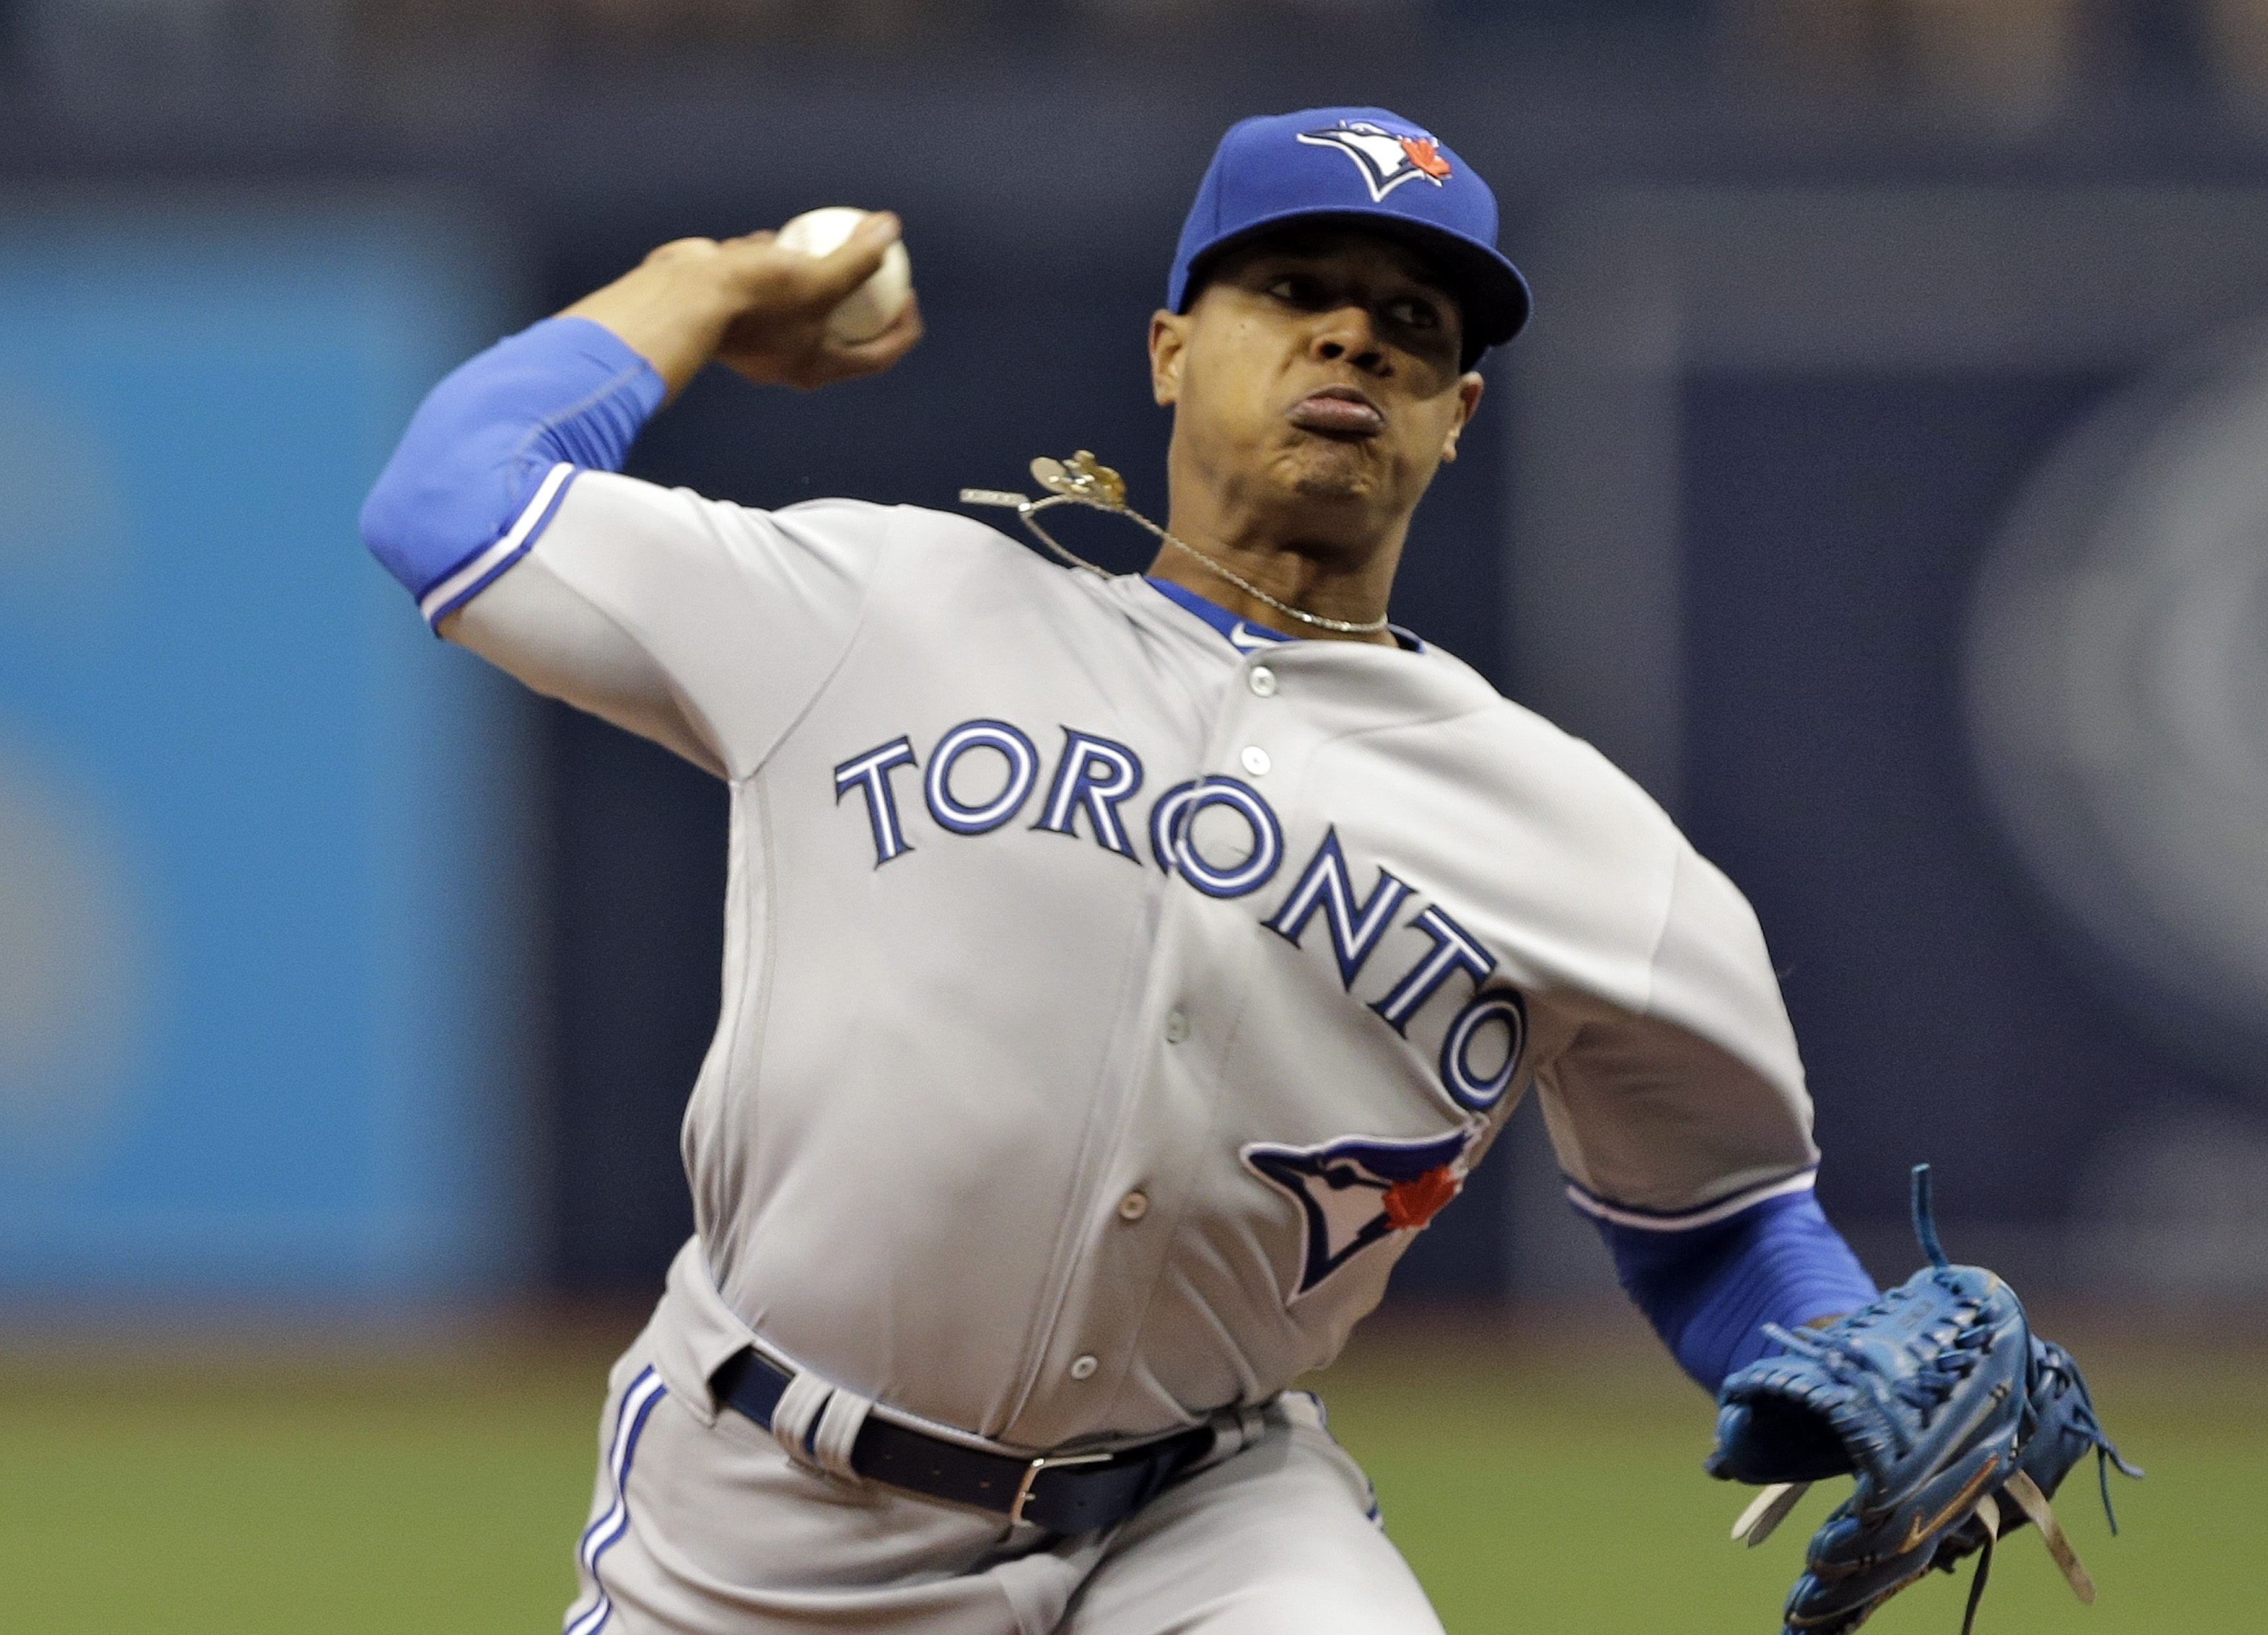 Rogers is reportedly considering selling the Blue Jays